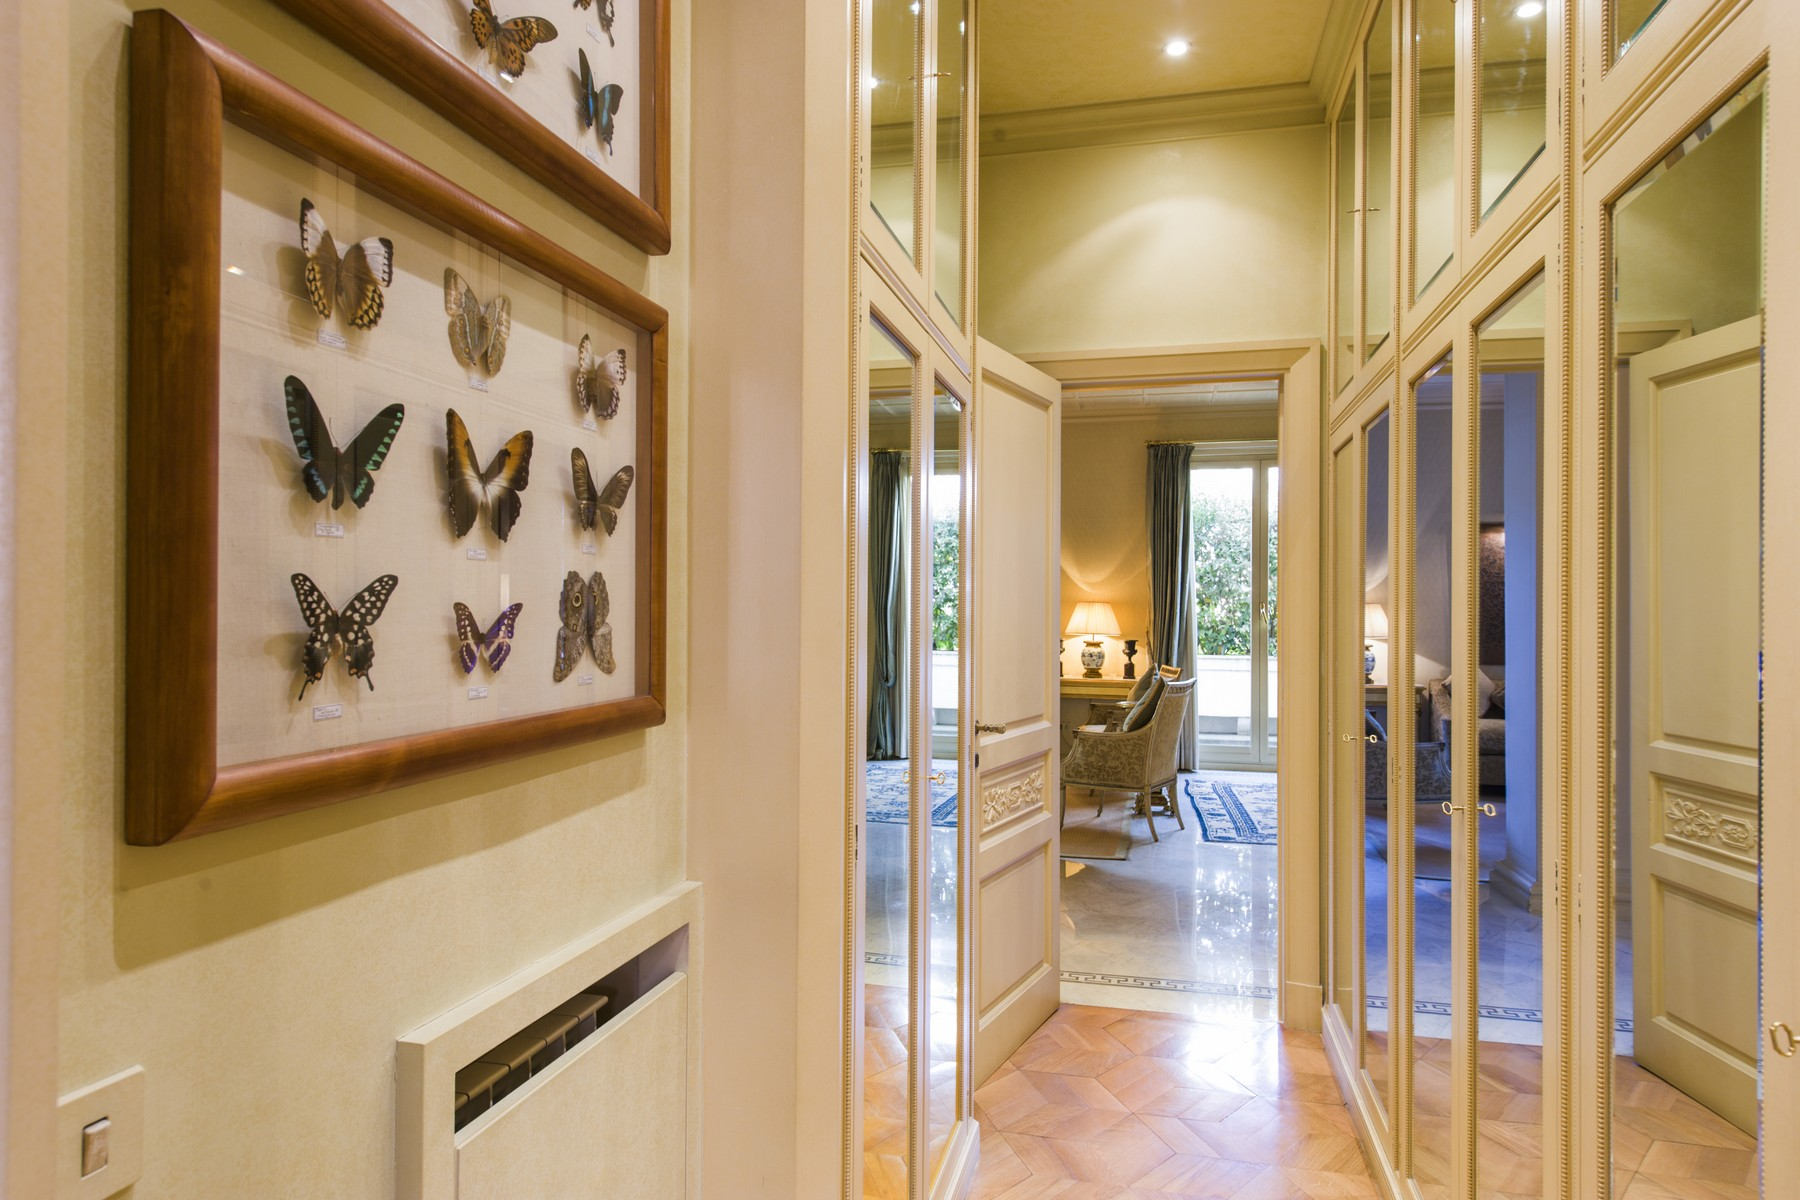 Additional photo for property listing at Stunning penthouse in the historical center Via Barberini Rome, Rome 00187 Italy